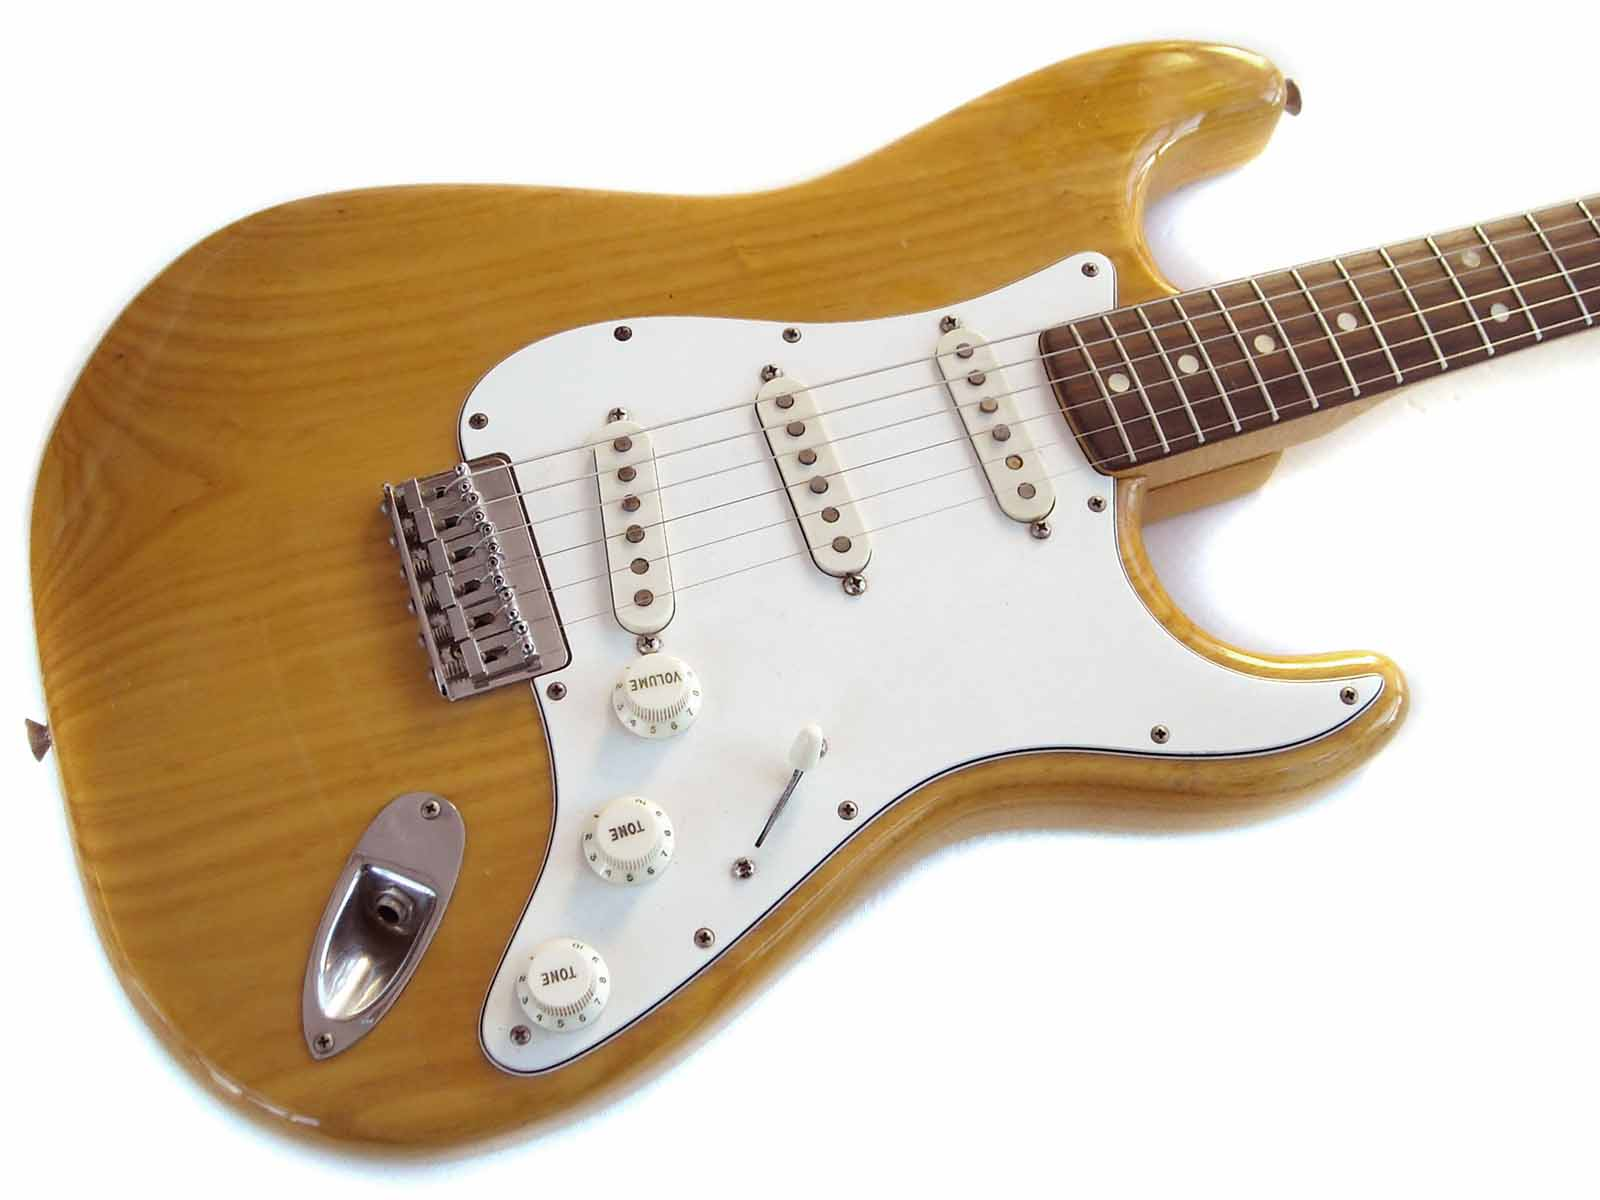 fender stratocaster 1973 natural guitar for sale wutzdog guitars. Black Bedroom Furniture Sets. Home Design Ideas